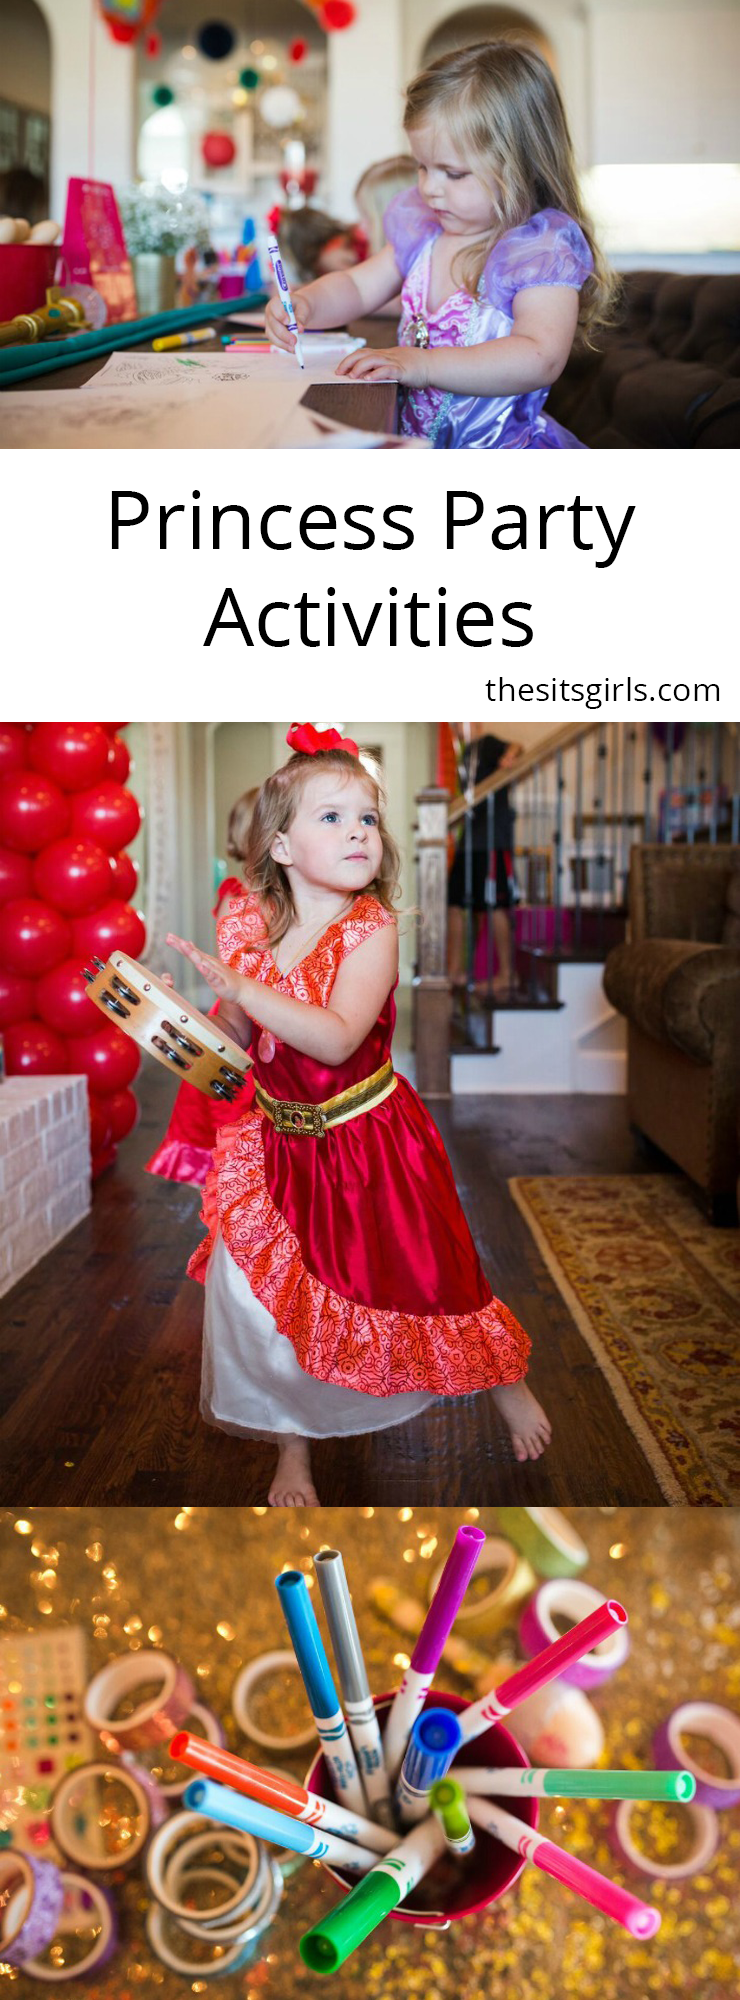 To throw the perfect princess party with Disney Junior's Elena and Sofia, you need great princess party activities. Great ideas here.